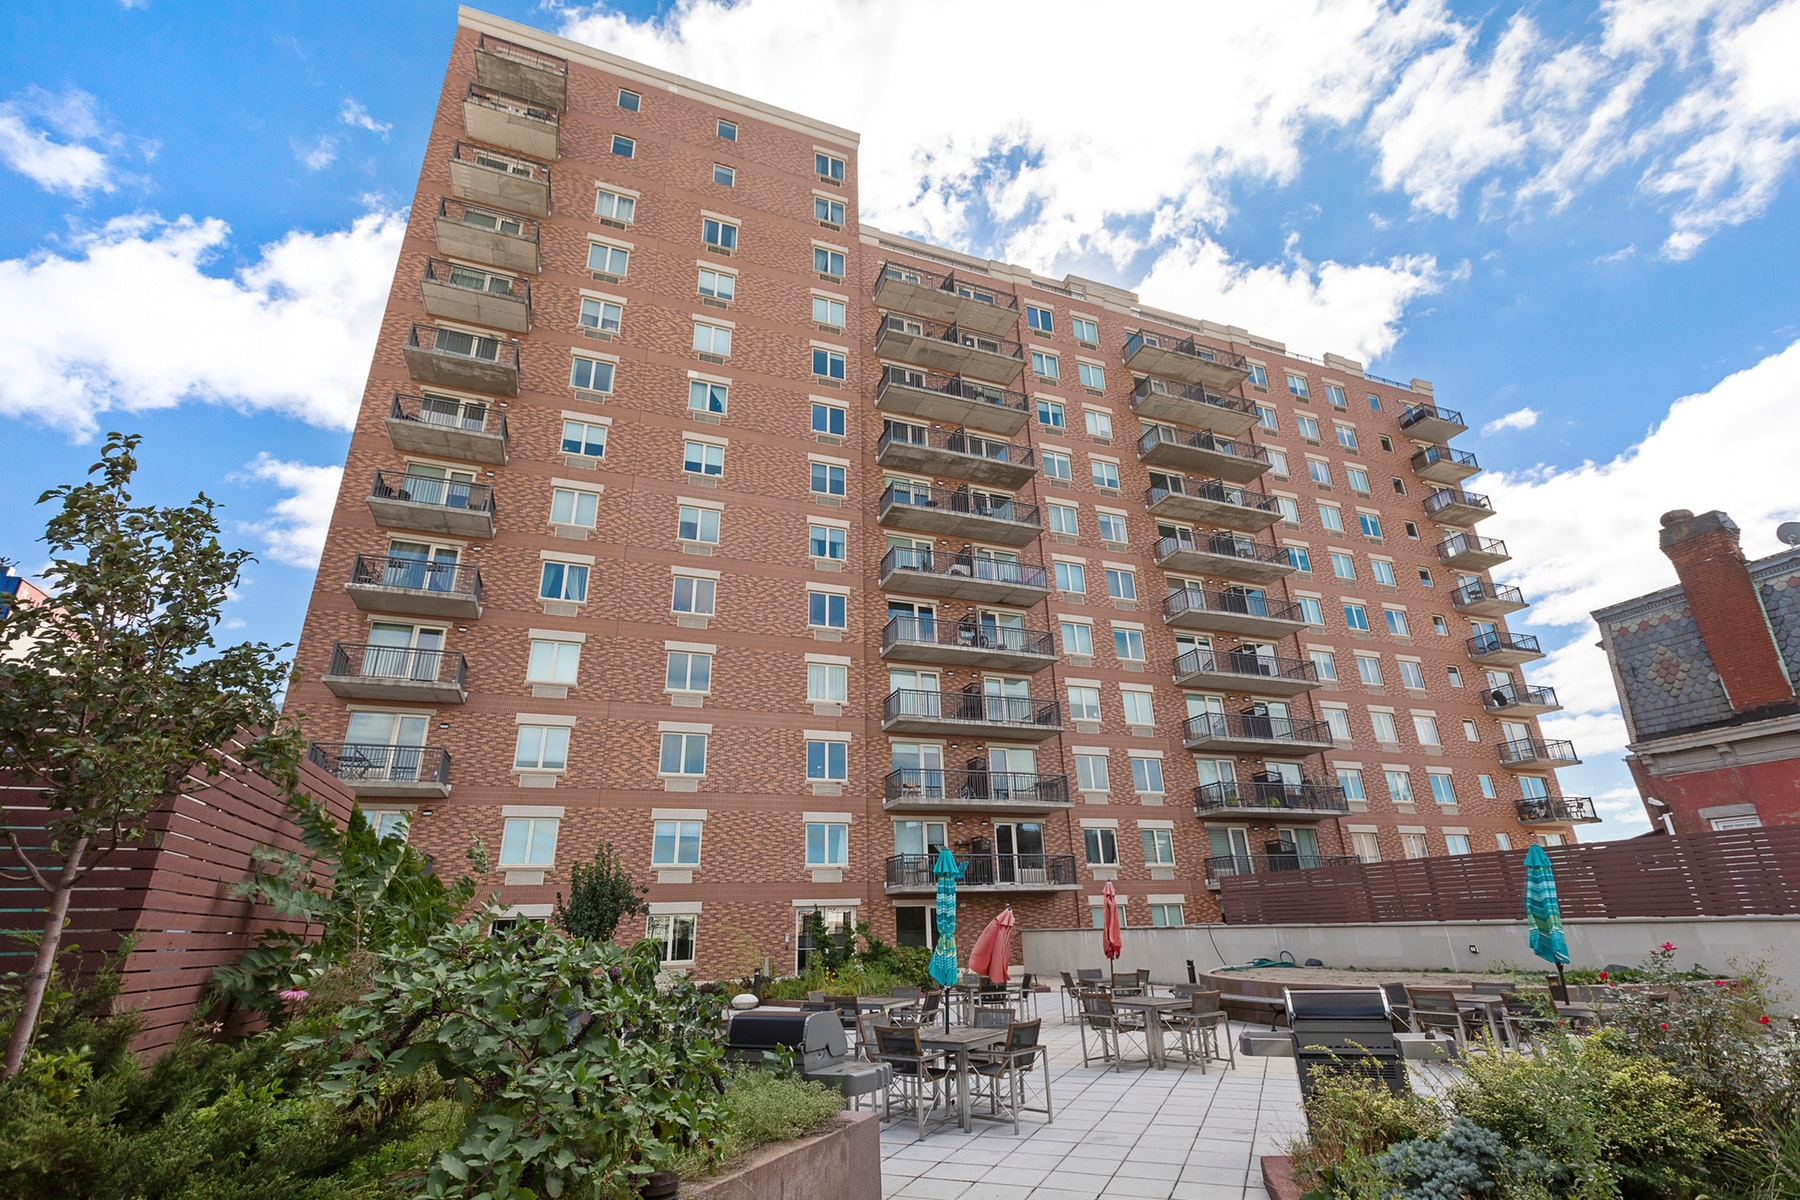 Property for Sale at The Thread 3312 Hudson Avenue Unit 4L, Union City, New Jersey 07087 United States